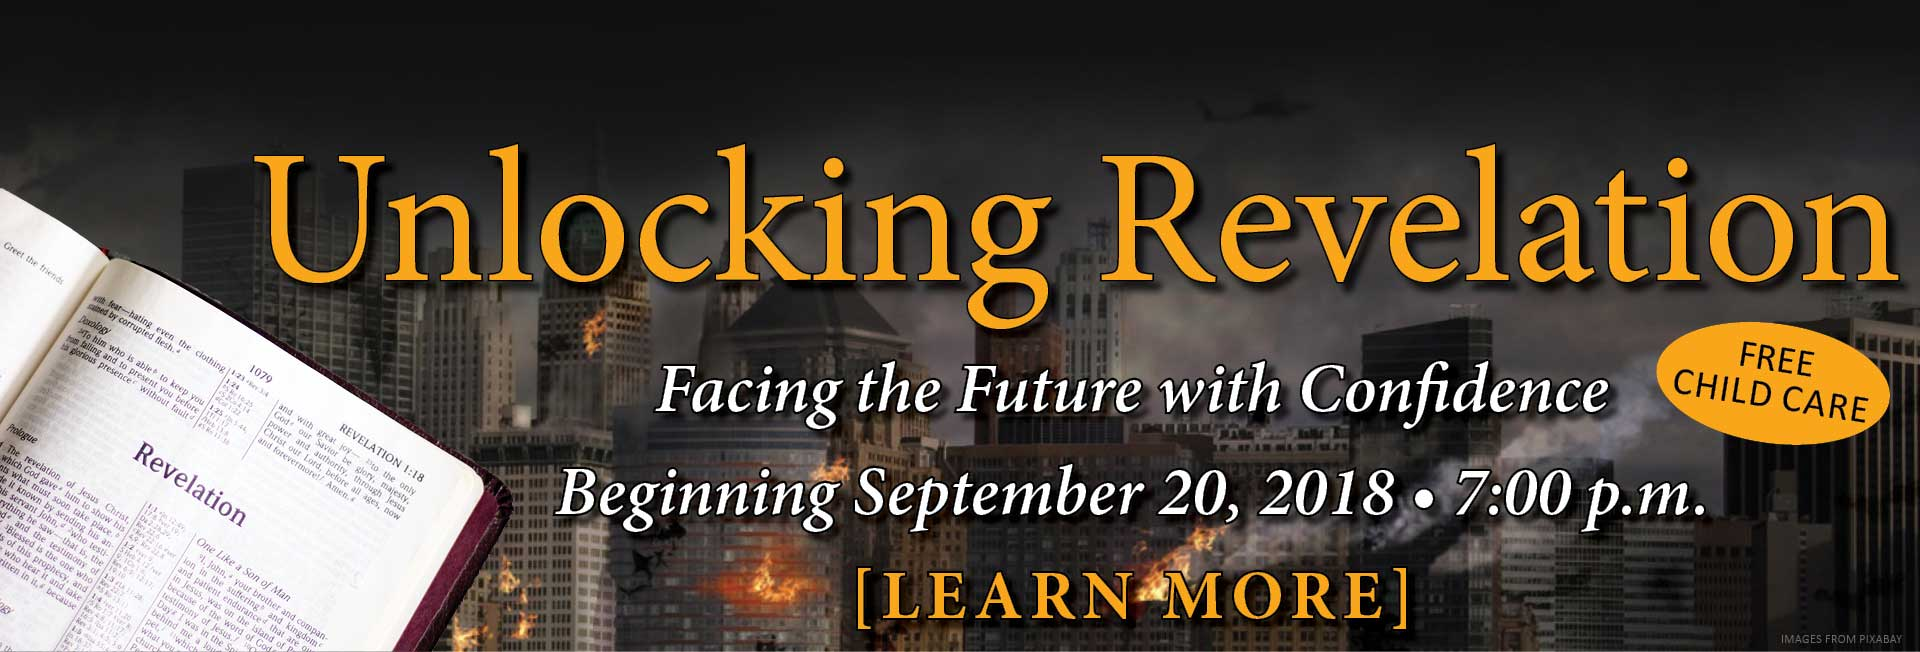 Unlocking Revelation - An exciting overview of the prophetic book of Revelation Starts September 20 at 7pm